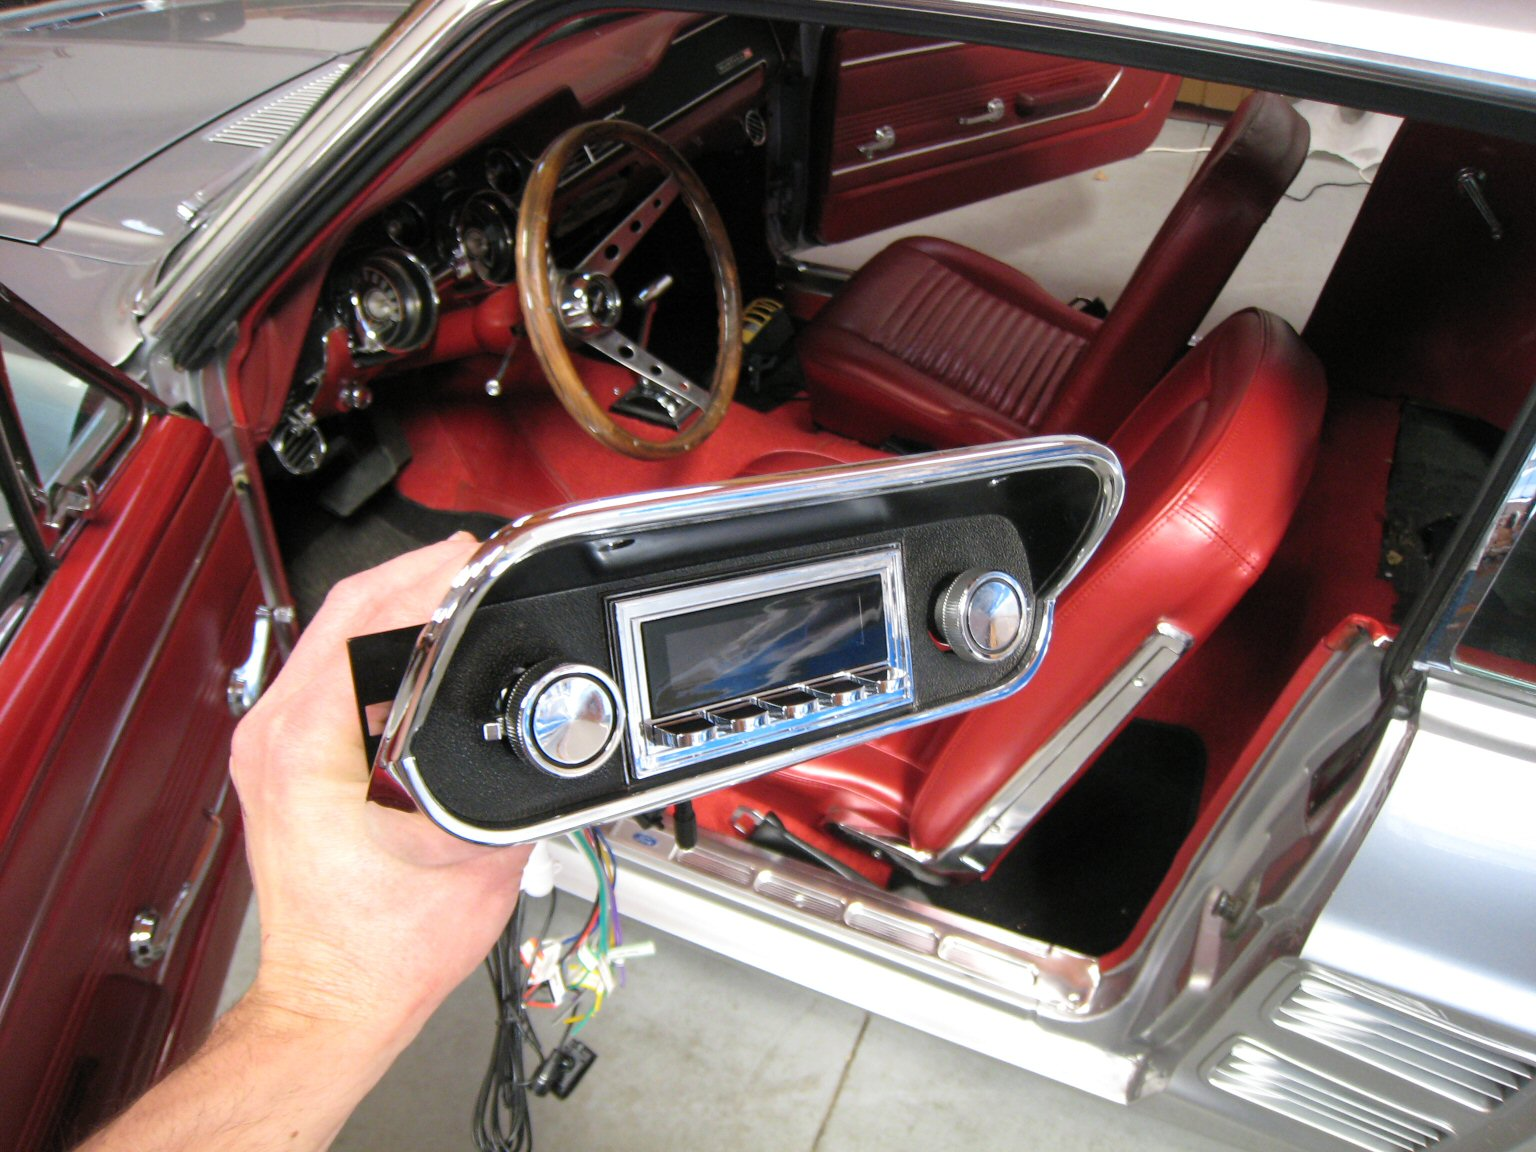 1967 Ford Mustang with RetoSound Radio Install by Phoenix Audio NZ (4).jpg